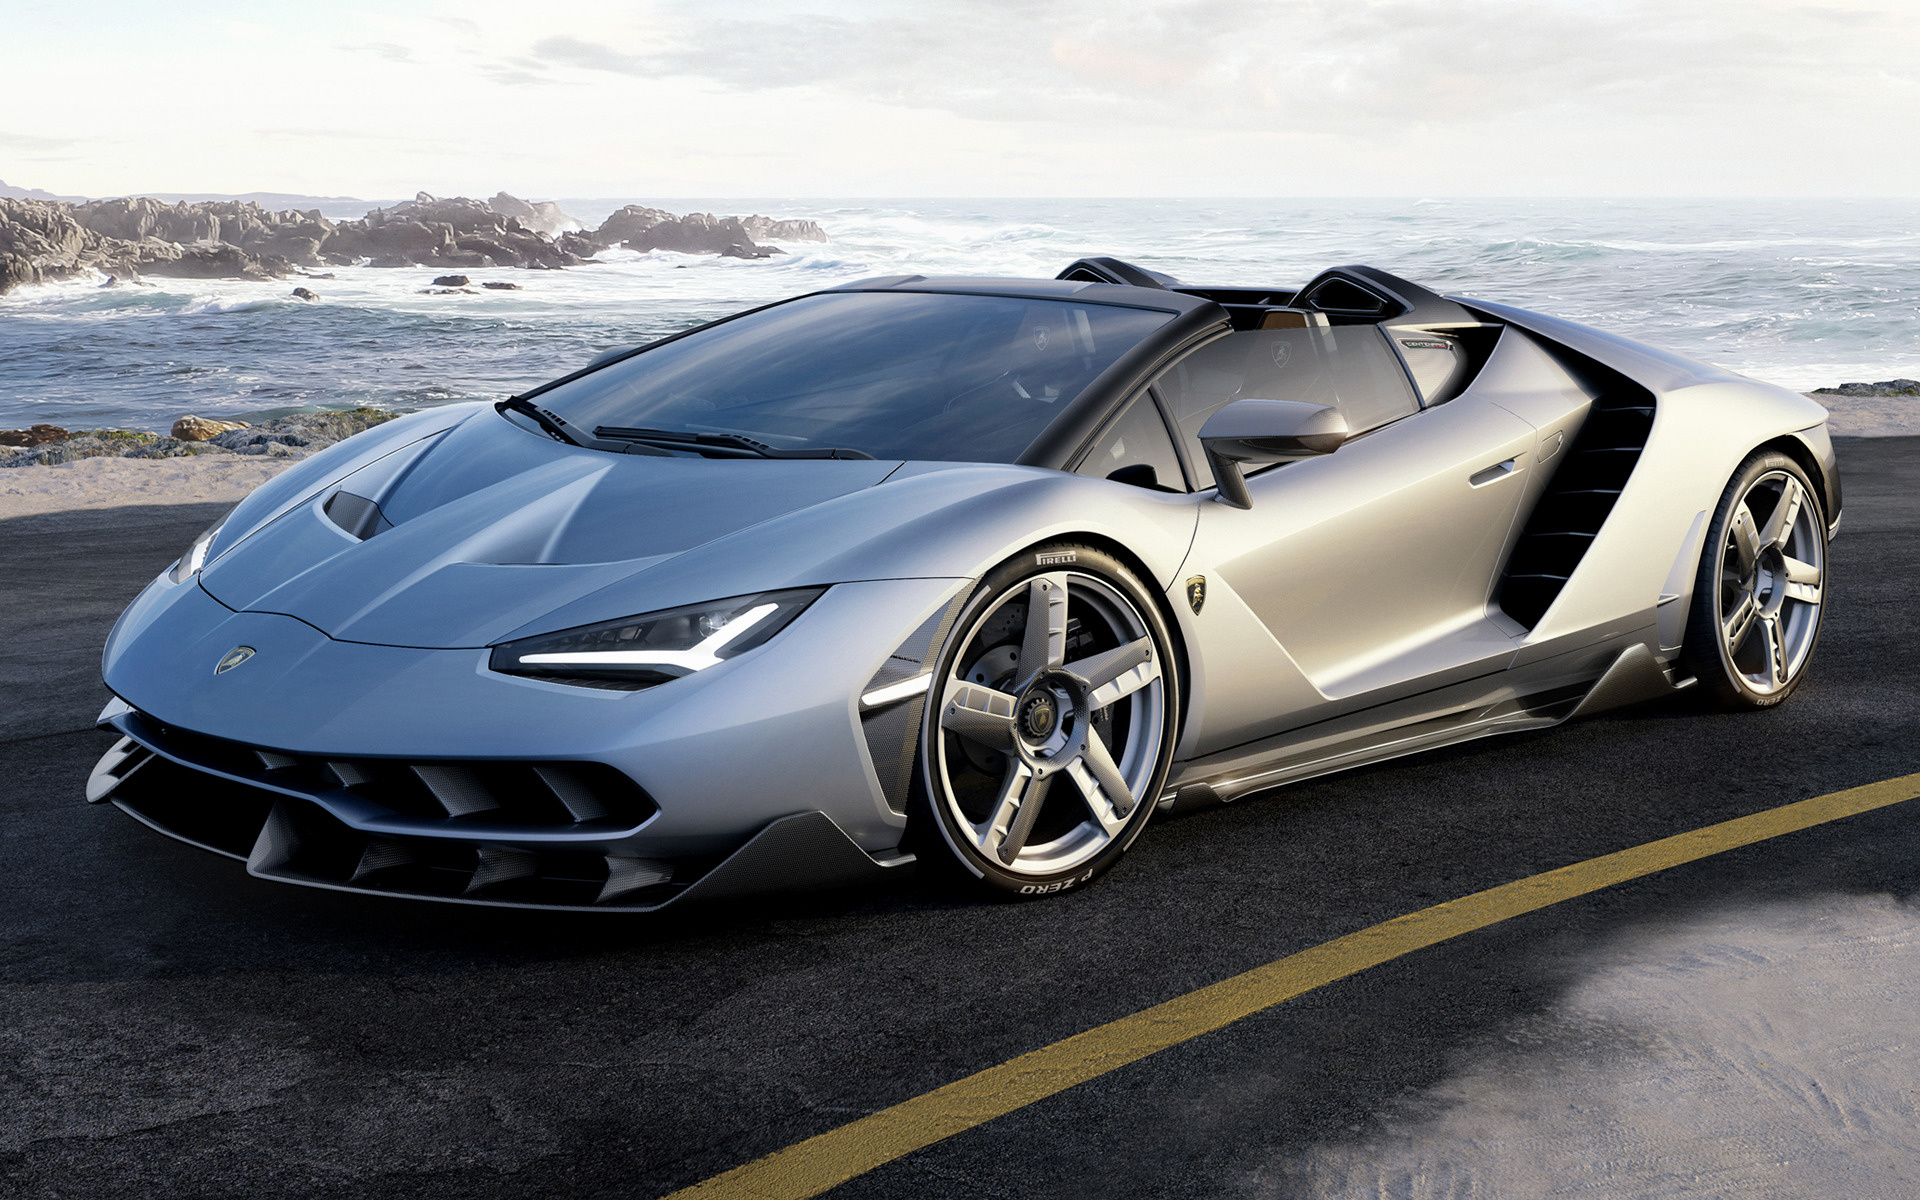 Hd wallpaper ram - Lamborghini Centenario Roadster 2016 Wallpapers And Hd